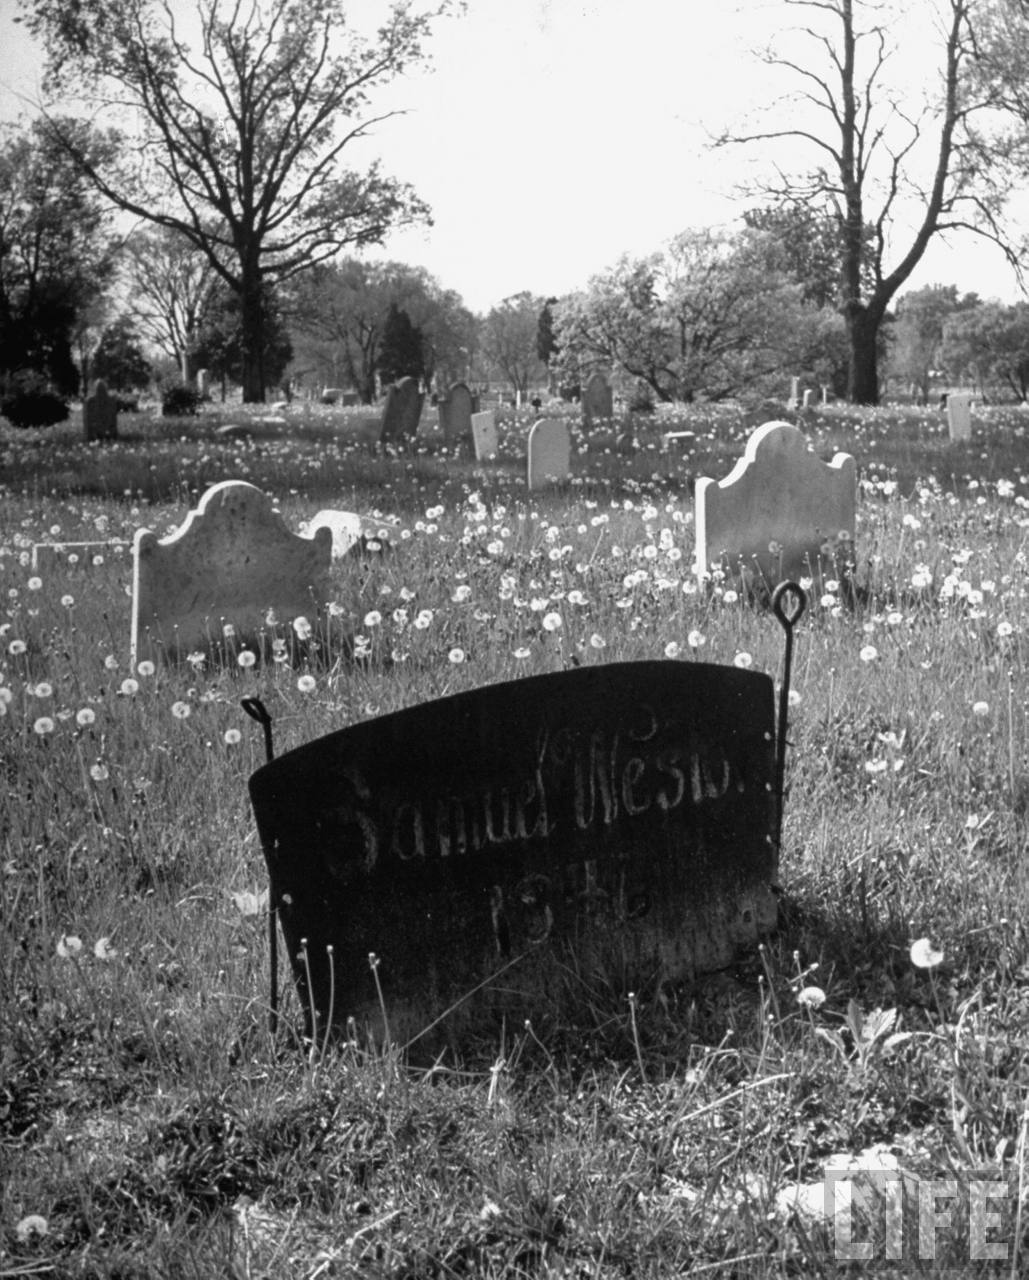 Grave of blacksmith Samuel Weston who died in1846 is marked by iron ox-cart tail resting on two plowshares from his shop (from photo essay re Harry Truman's Missouri).